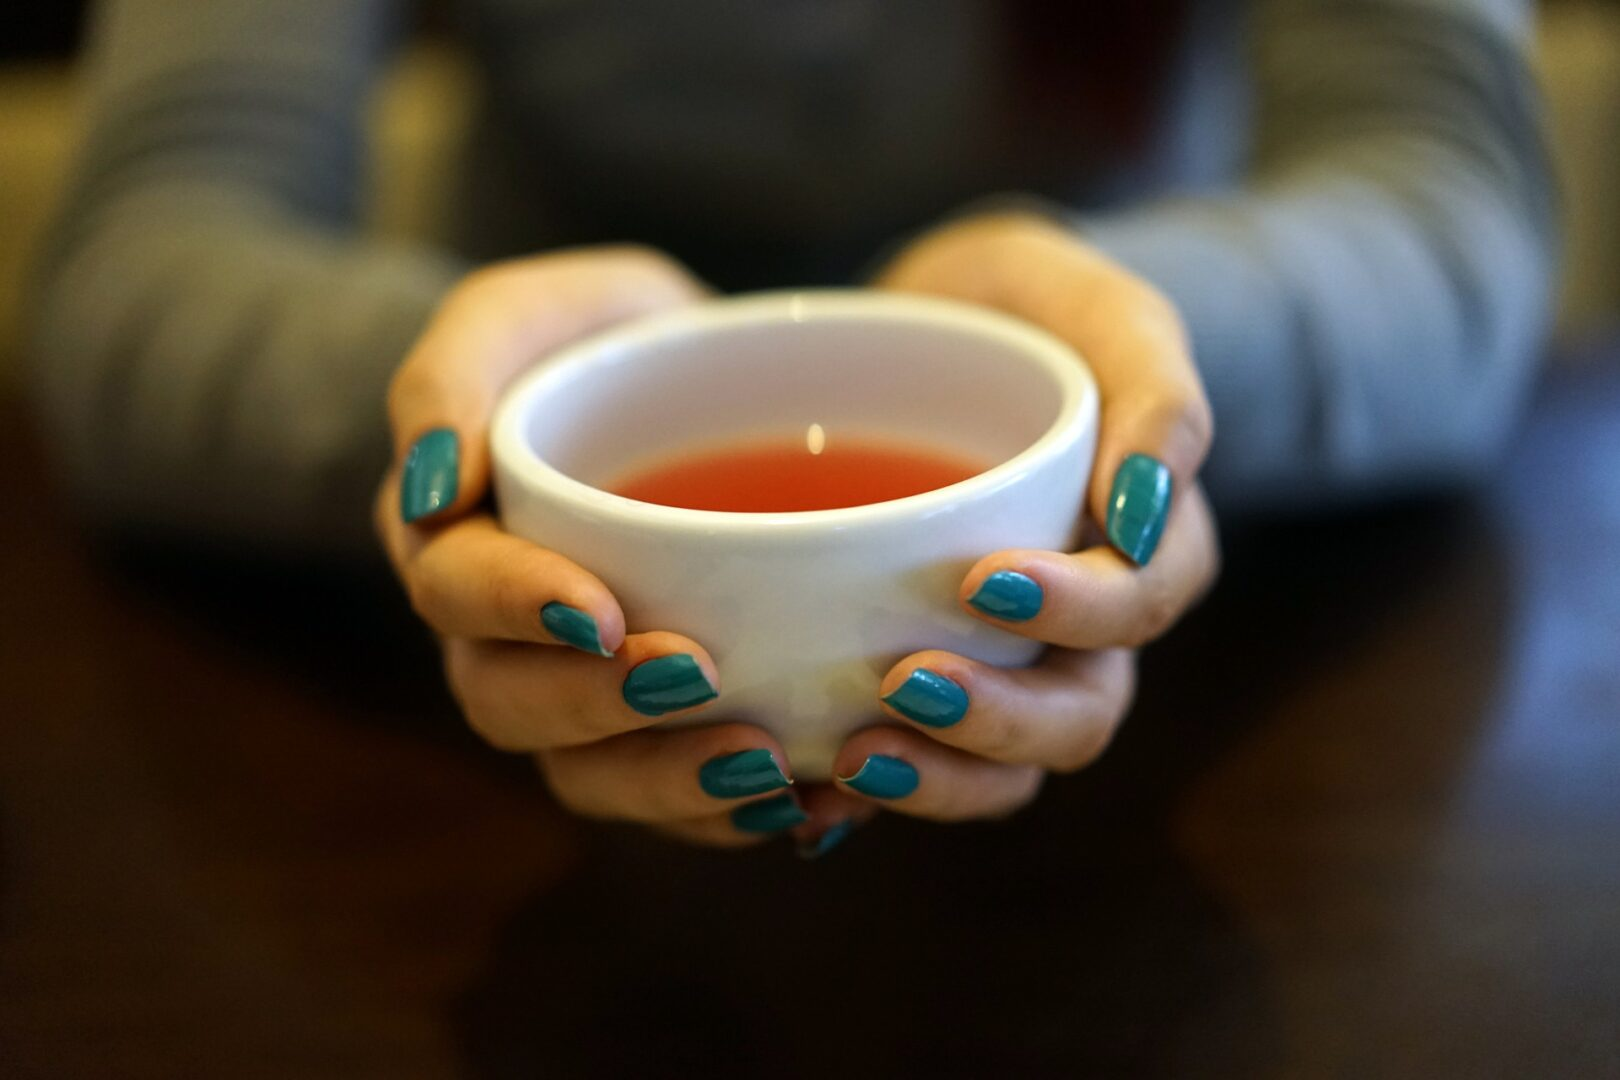 Warming up with tea